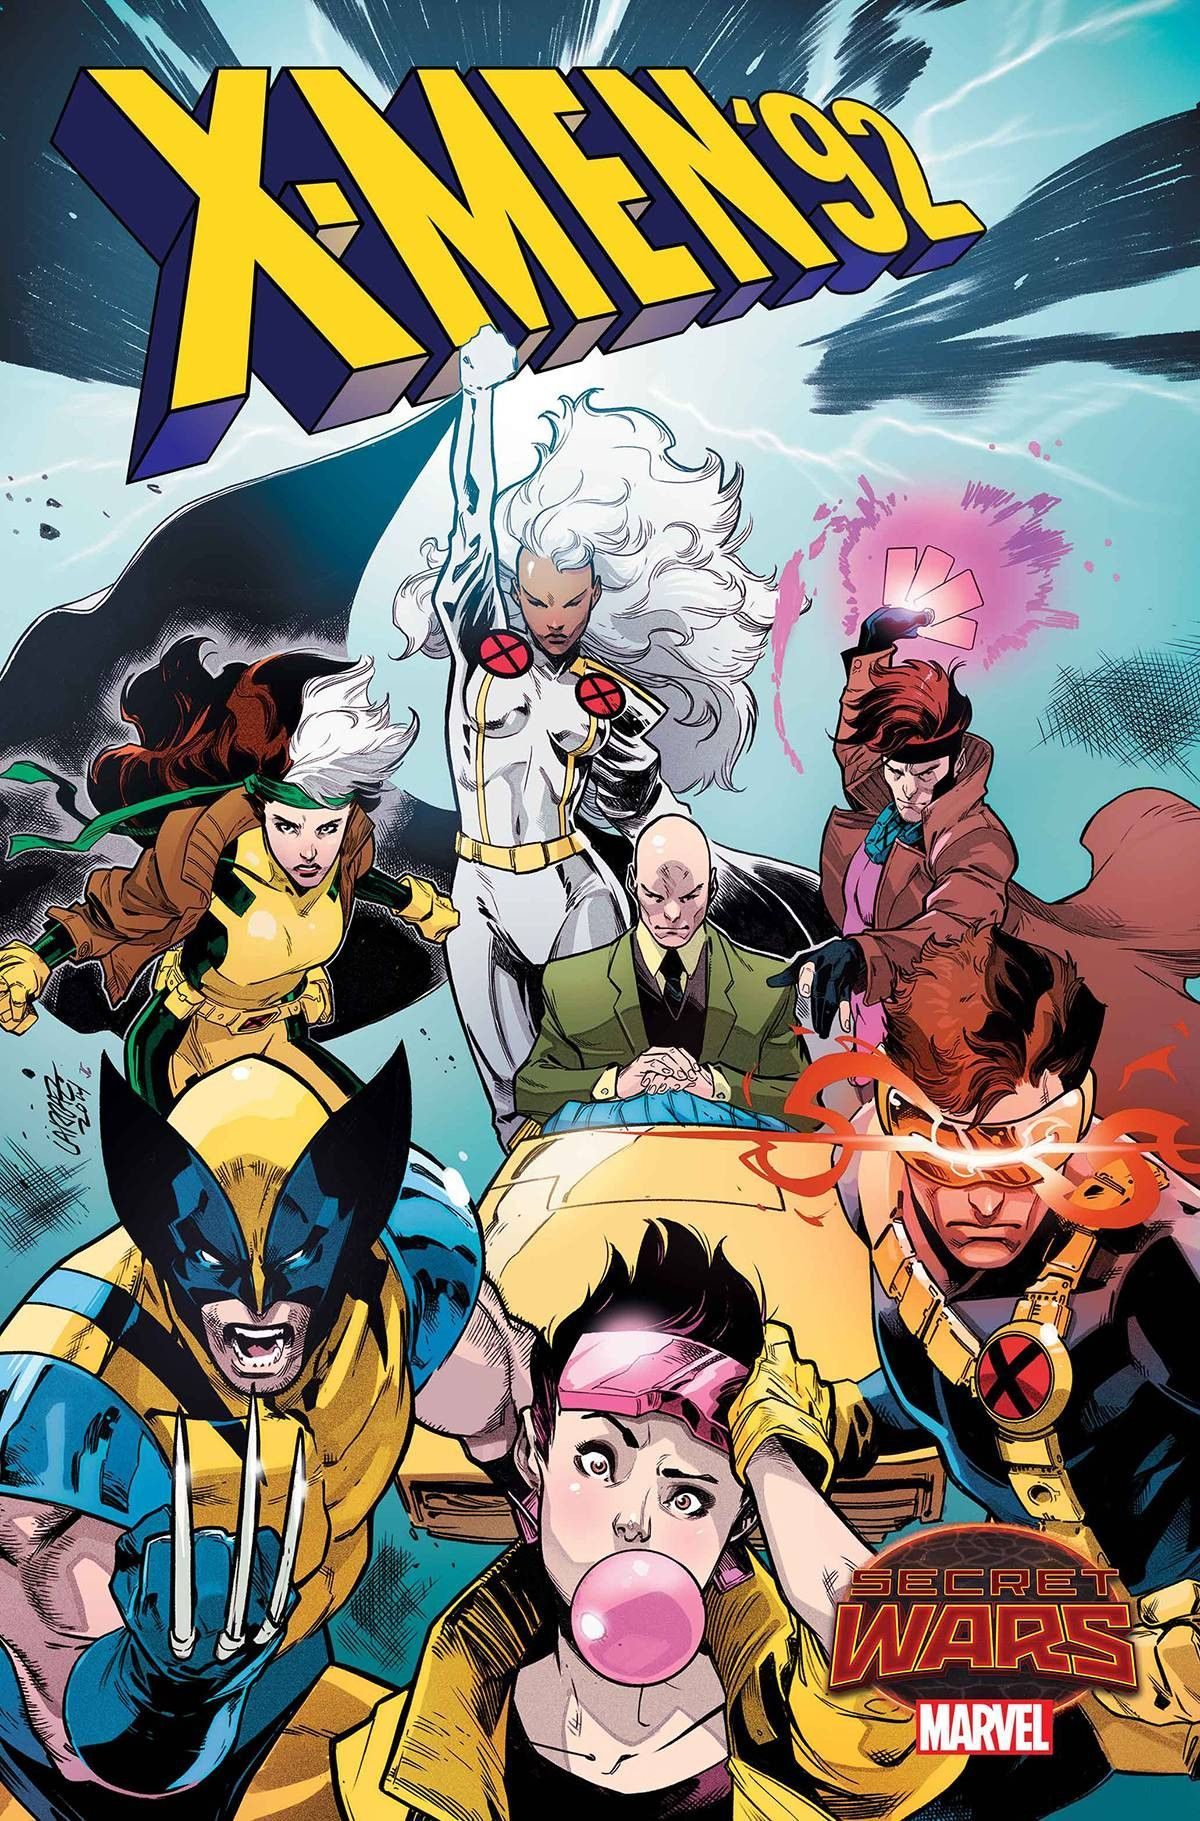 X Men 92 1 Marvel Comics X Men Marvel Comics Art